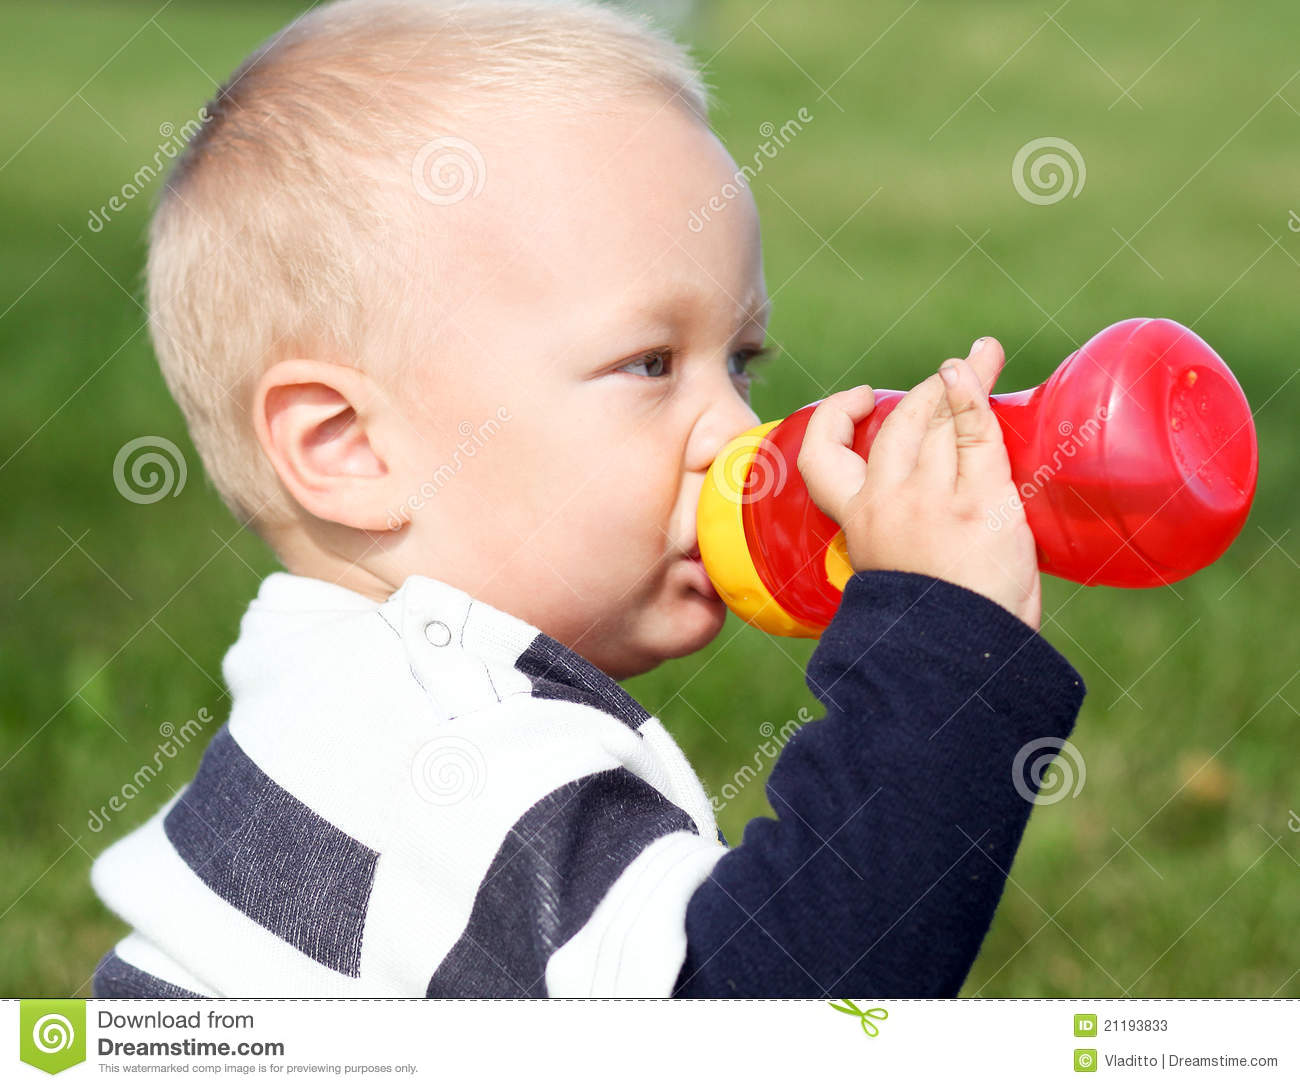 Adorable child drinking